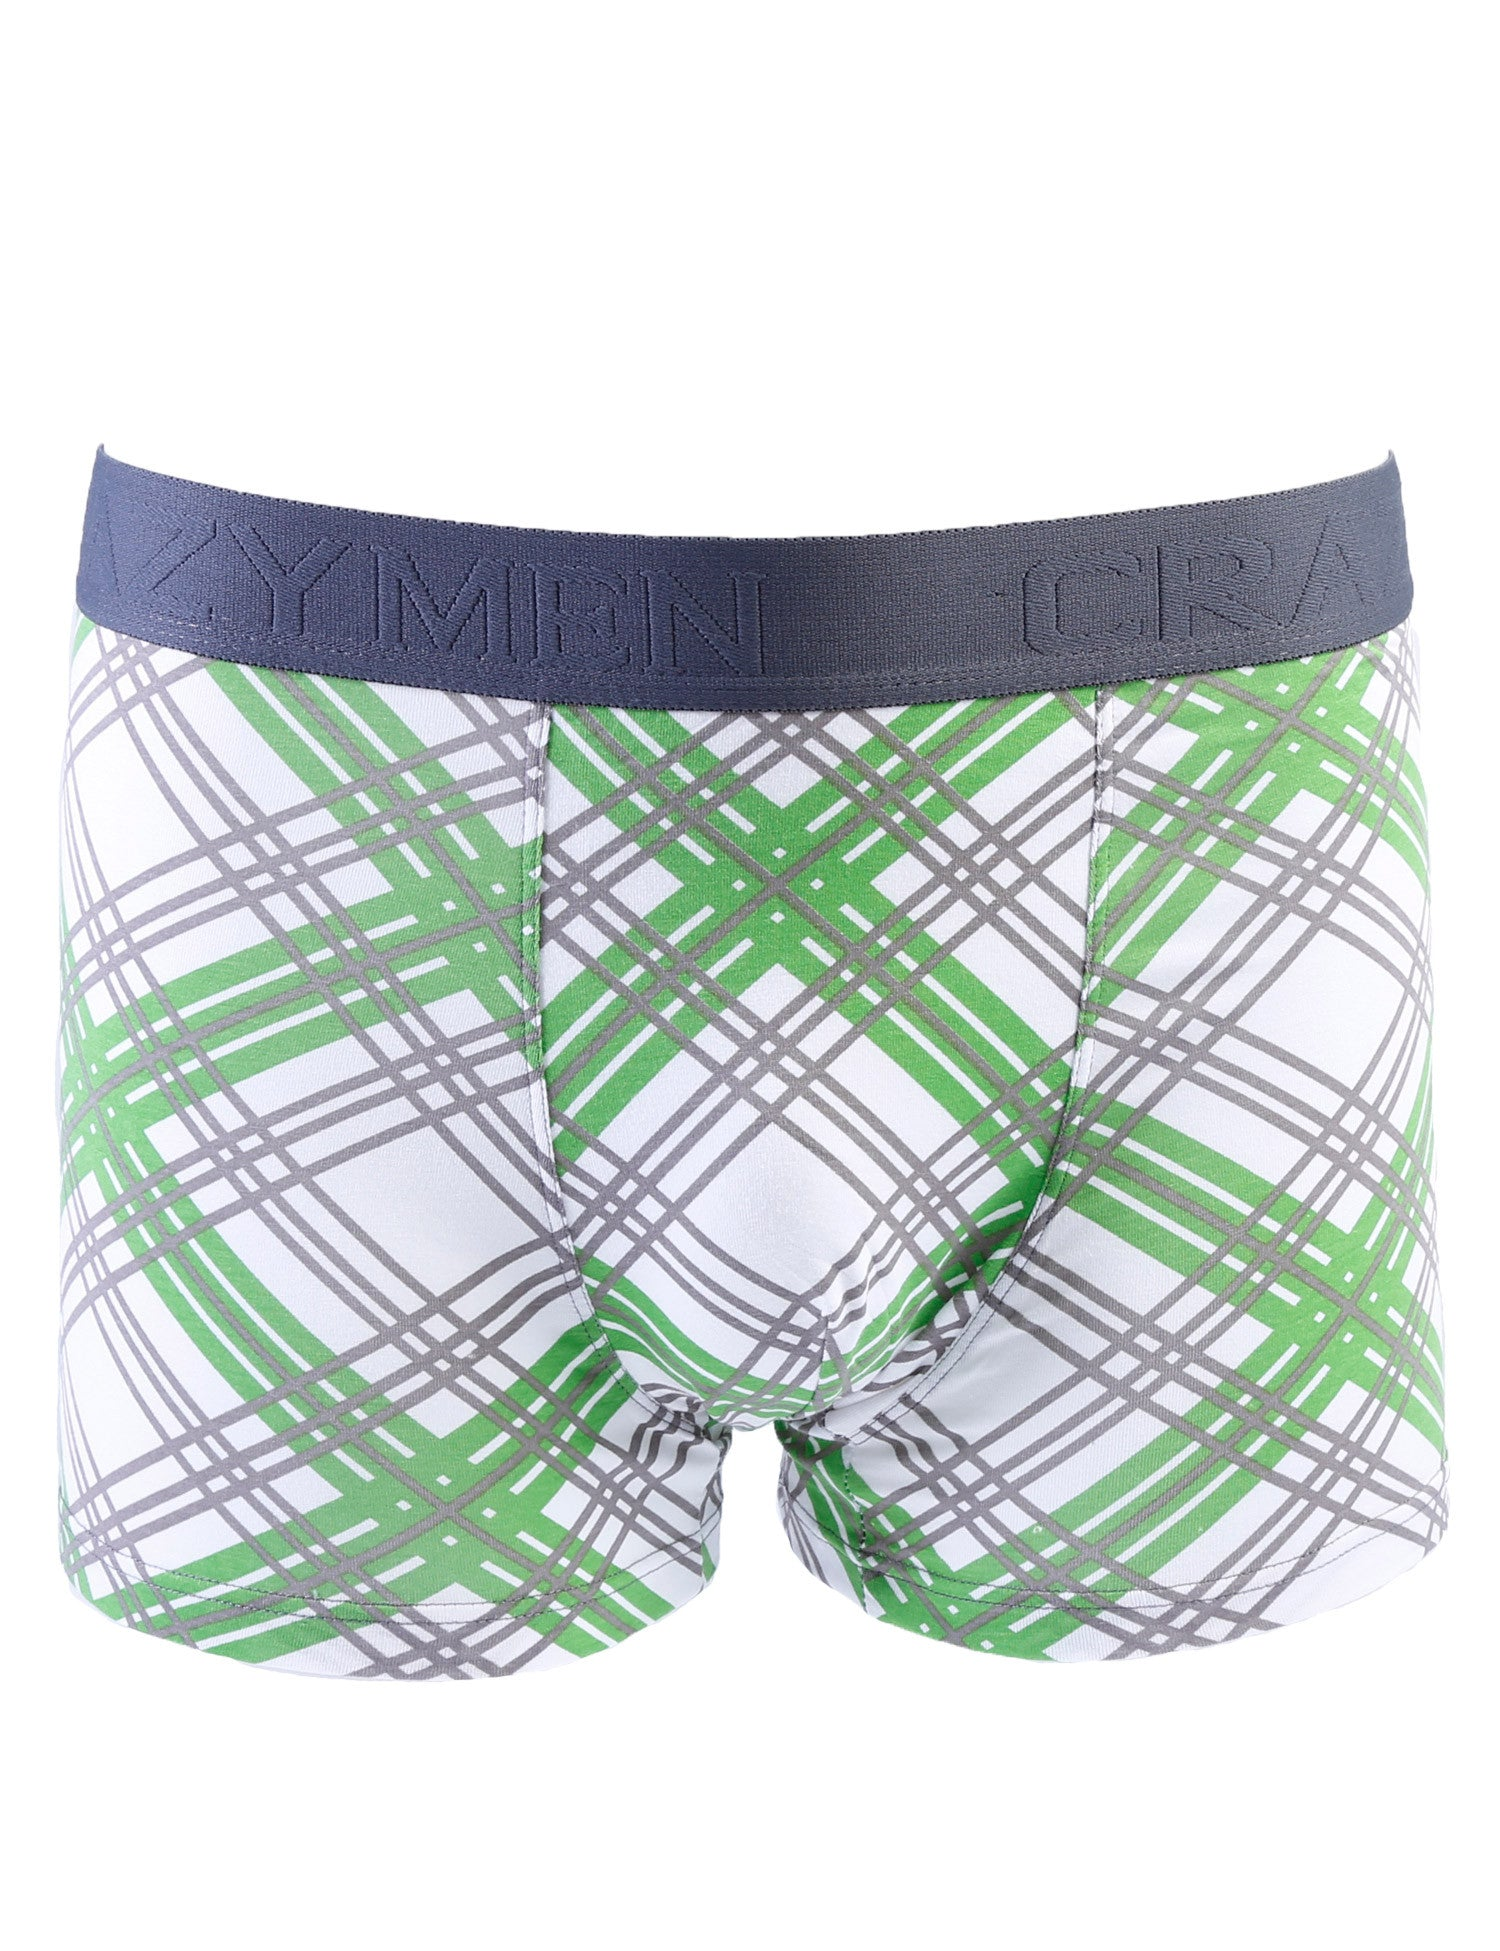 Crazyman Boxers 6024 Green